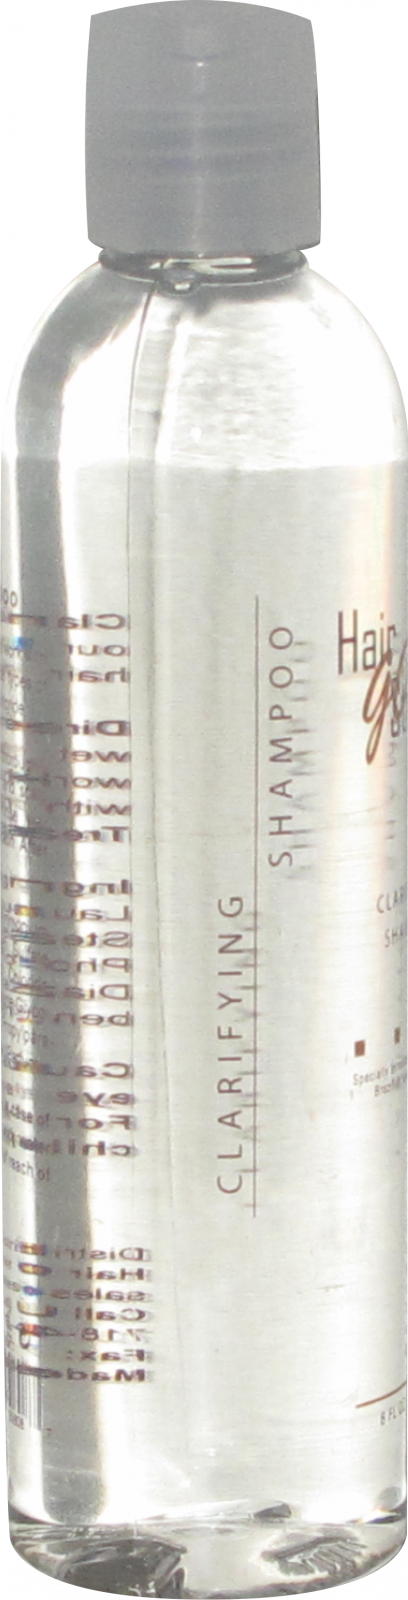 SHAMPOING%20CLARIFIANT%20HAIR%20GO%20STRAIGHT%20236%20ml